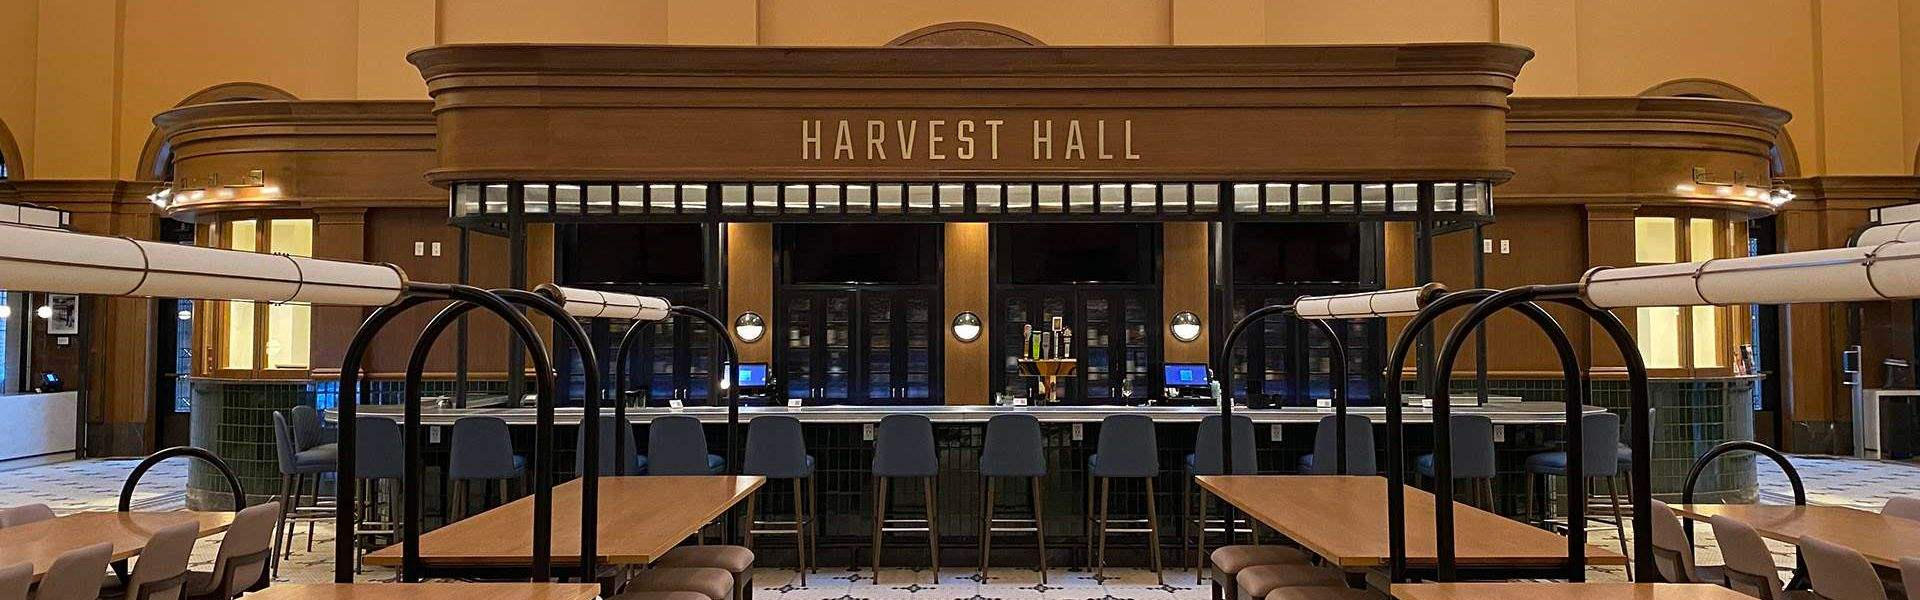 Drink Harvest Hall in Texas